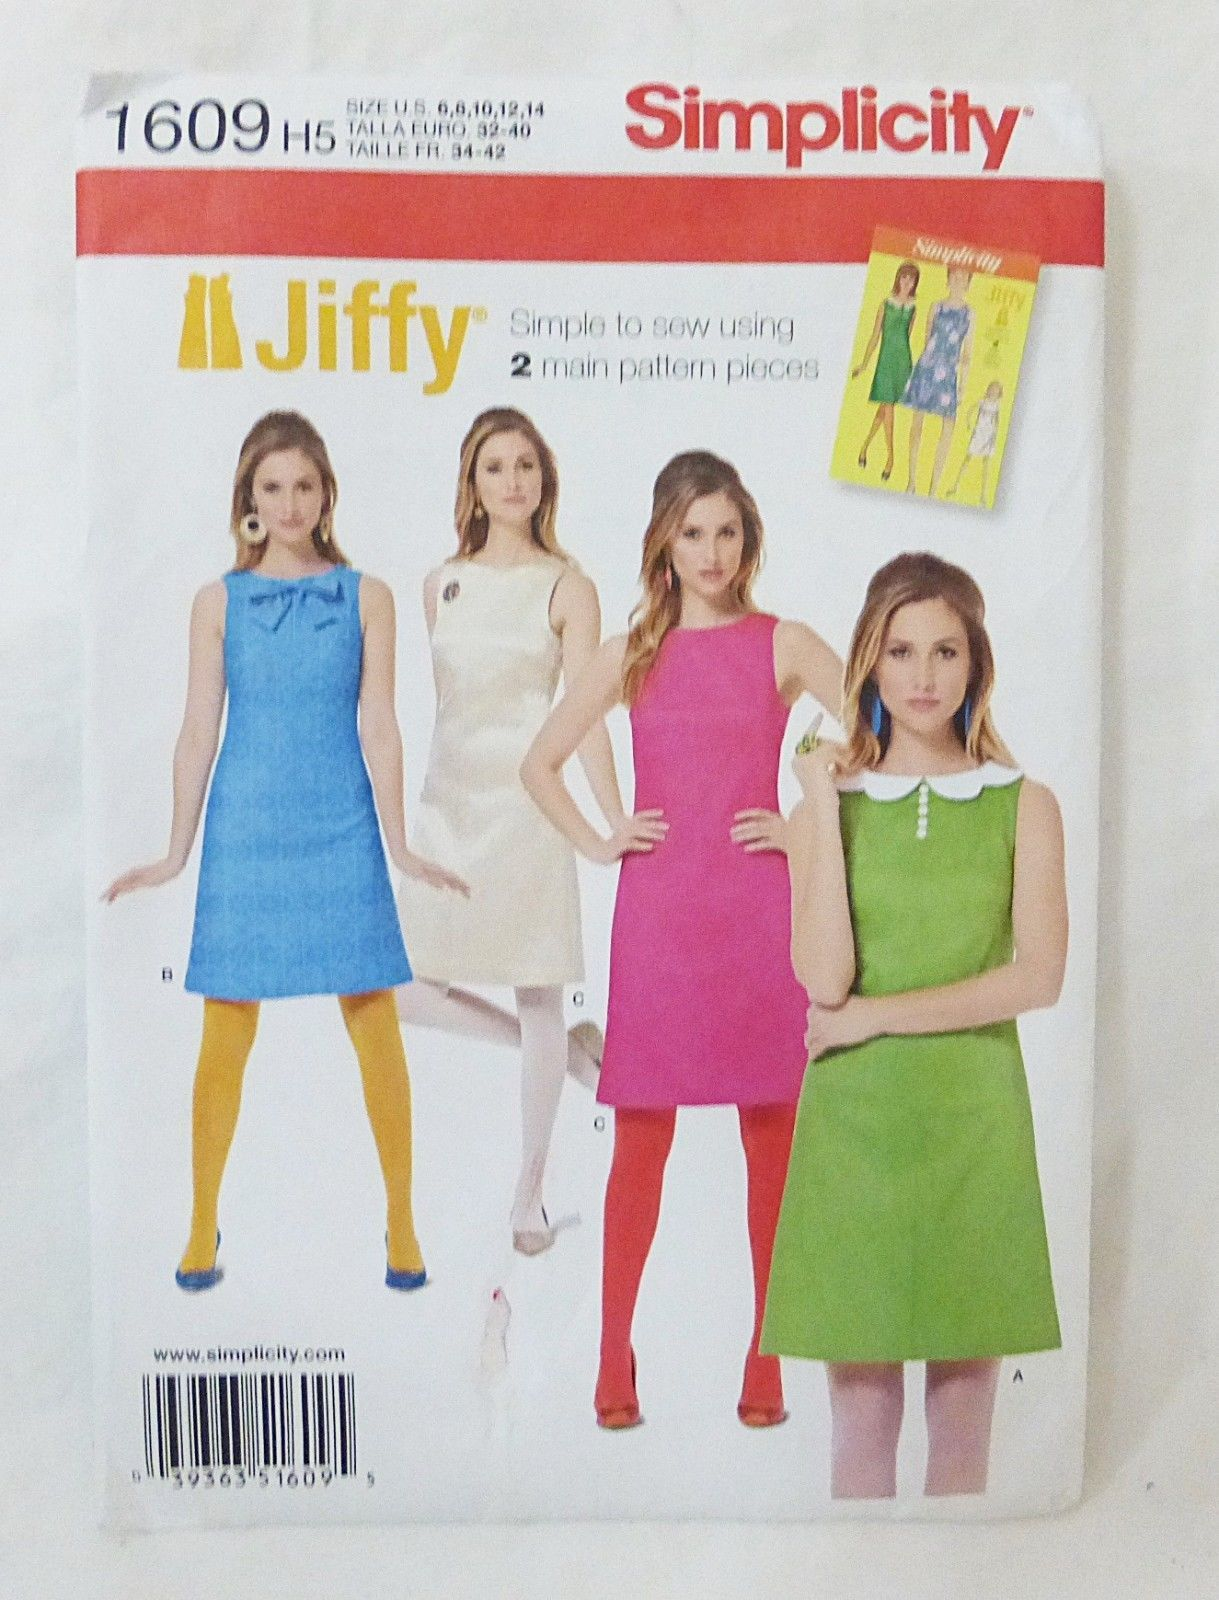 Primary image for Simplicity Jiffy 1960's Vintage Dress sewing pattern 1609 size H5 6-14